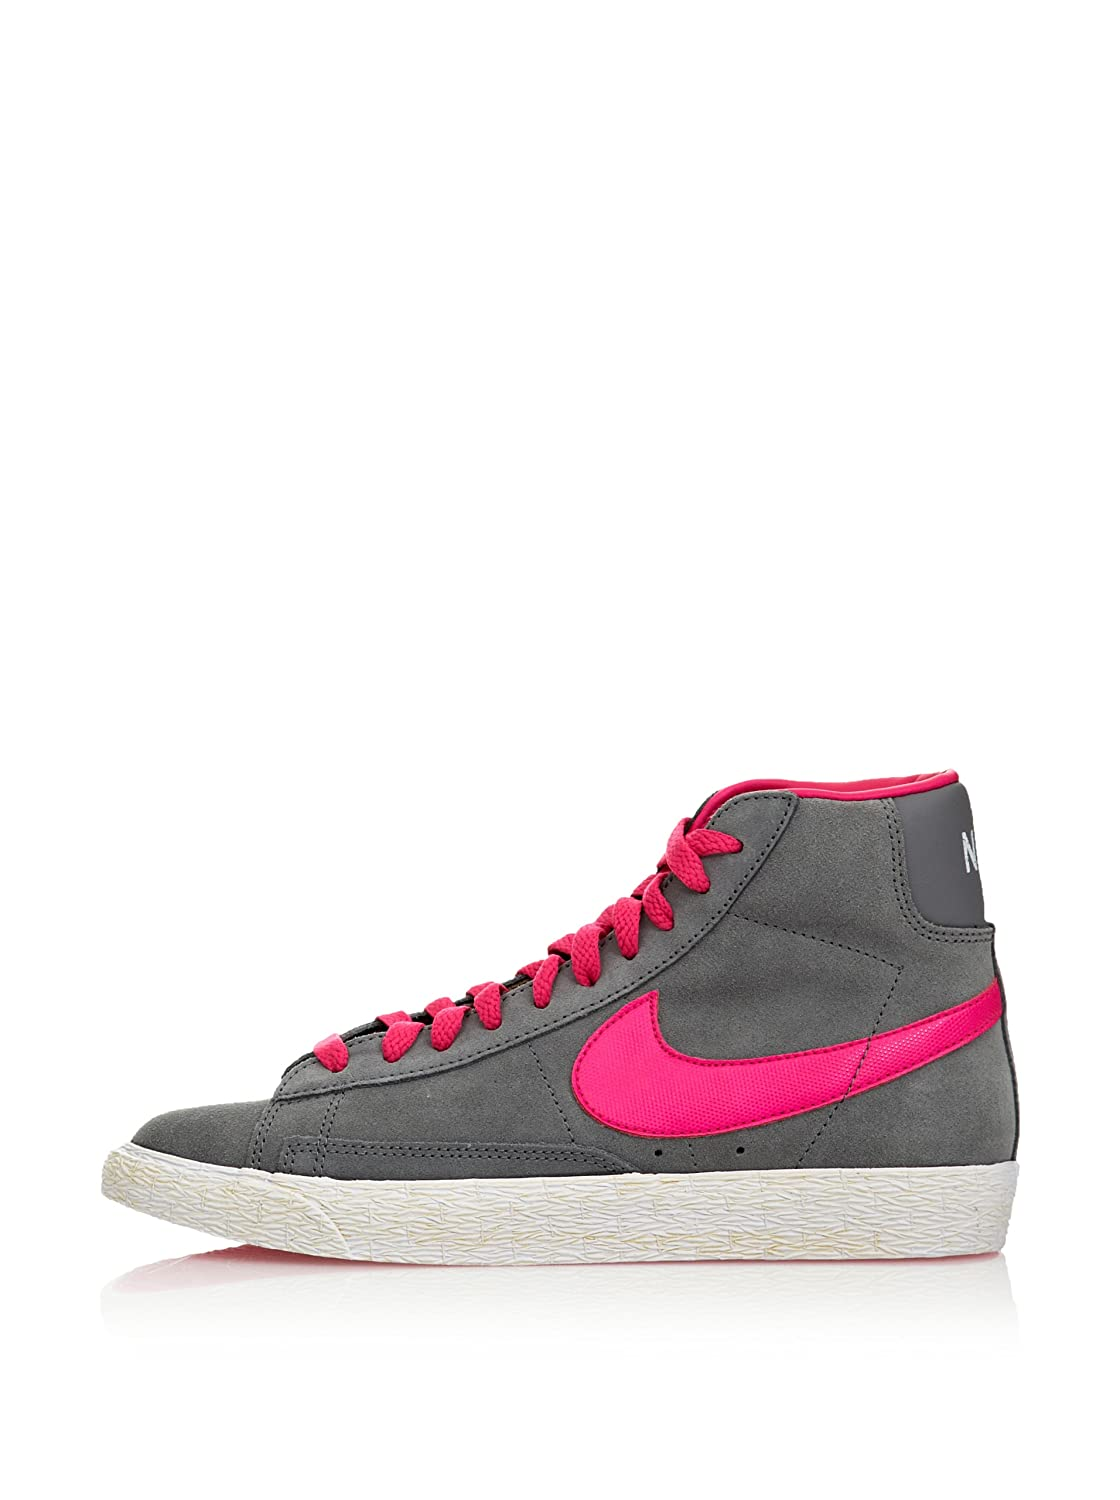 buy popular 1026d b1226 Nike Girls  Blazer Mid Vintage (GS) High-top Trainers